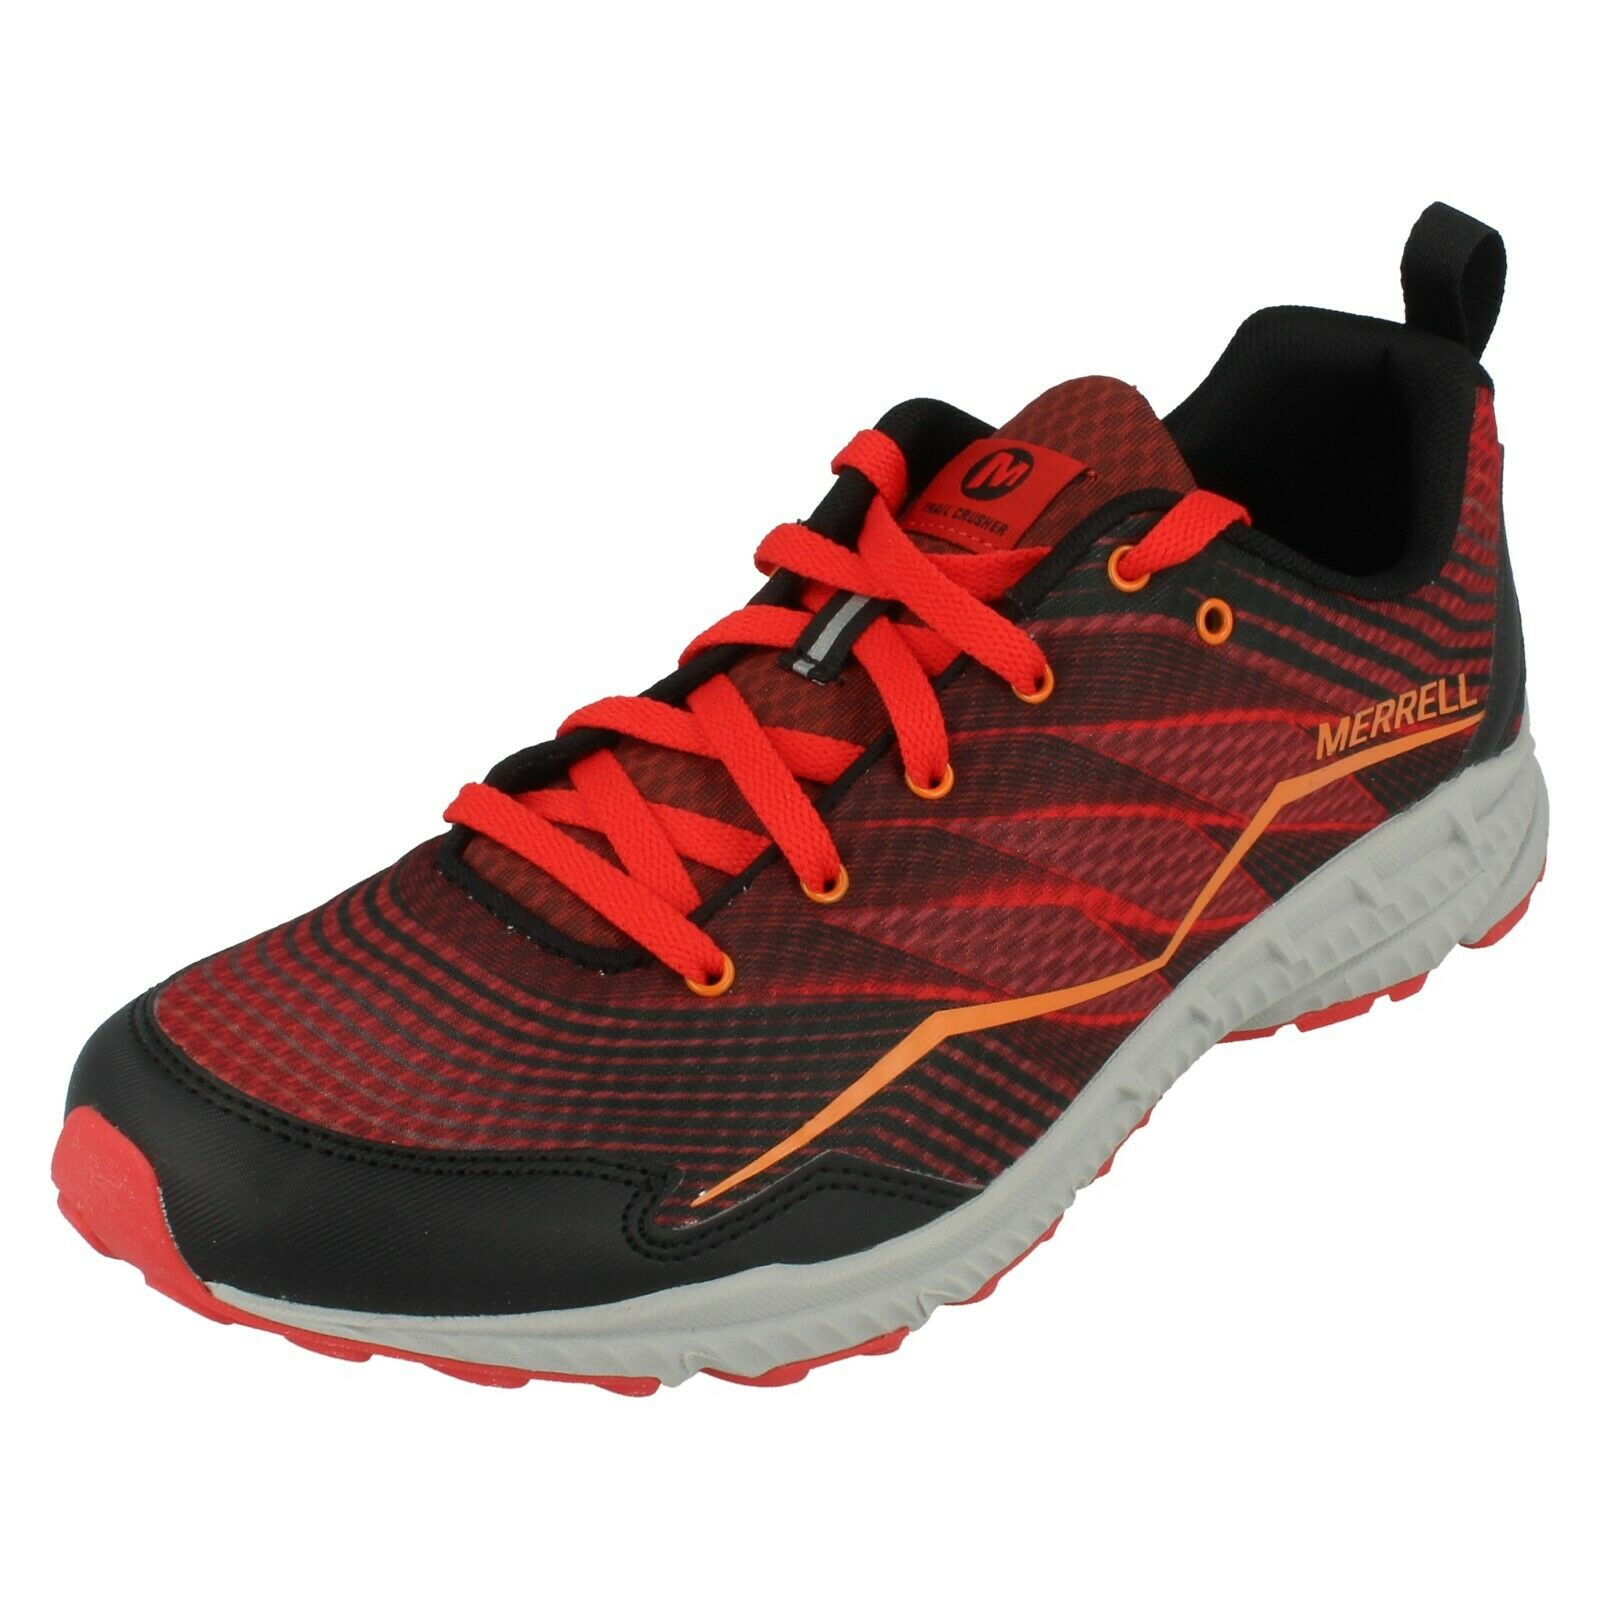 Mens merrell Light Weight Running Trainers Trail Crusher